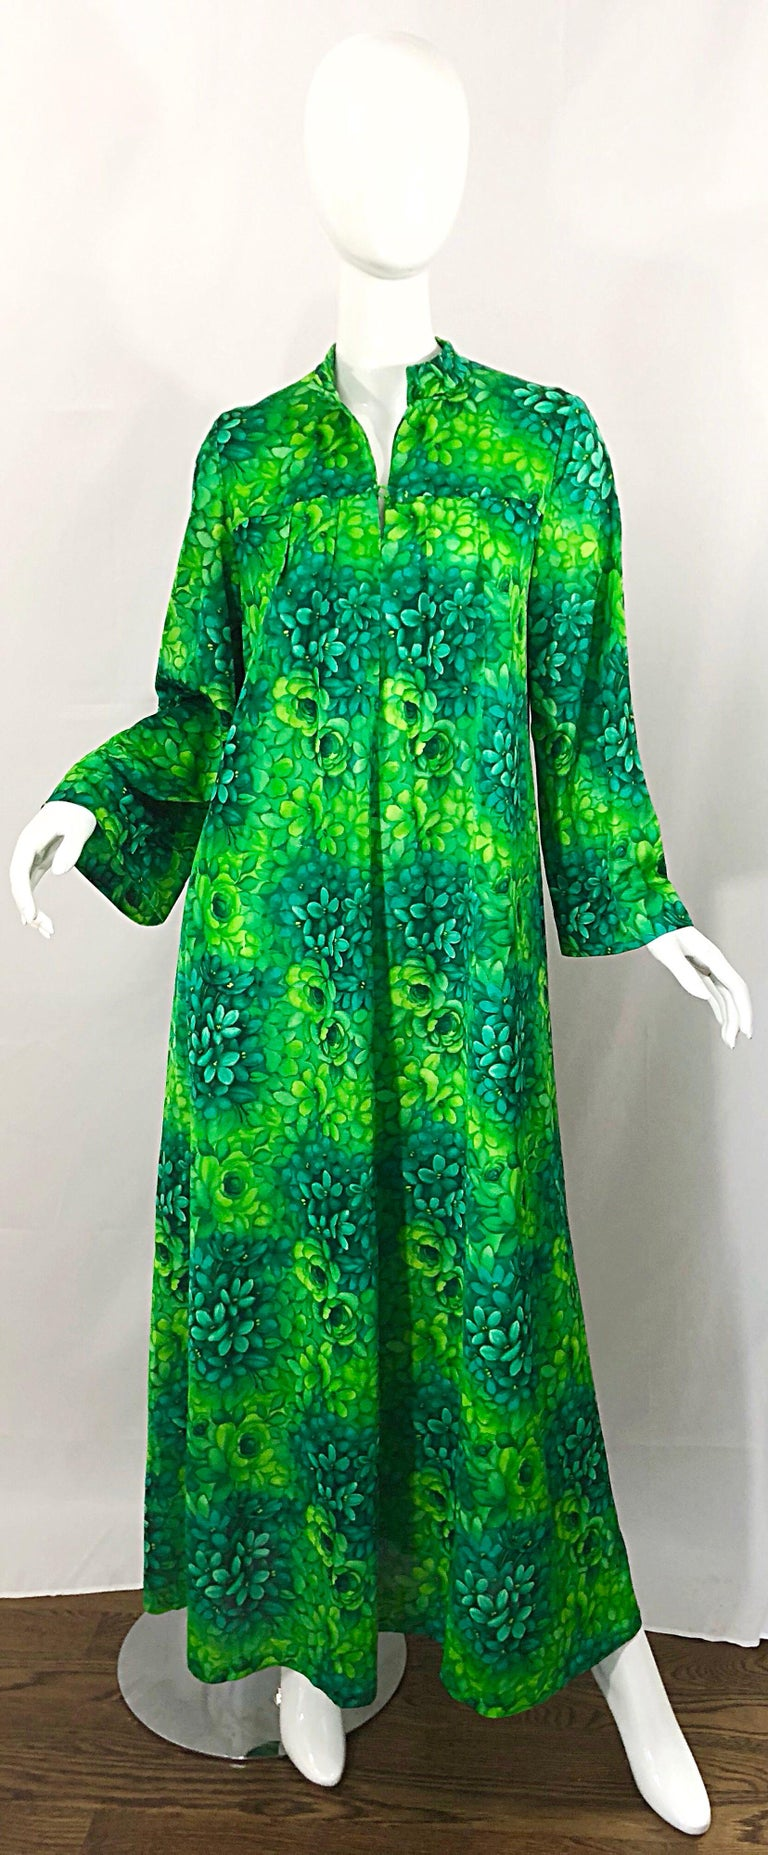 Women's Amazing 1970s Neon + Kelly Green Abstract Flower Print 70s Vintage Caftan Dress For Sale